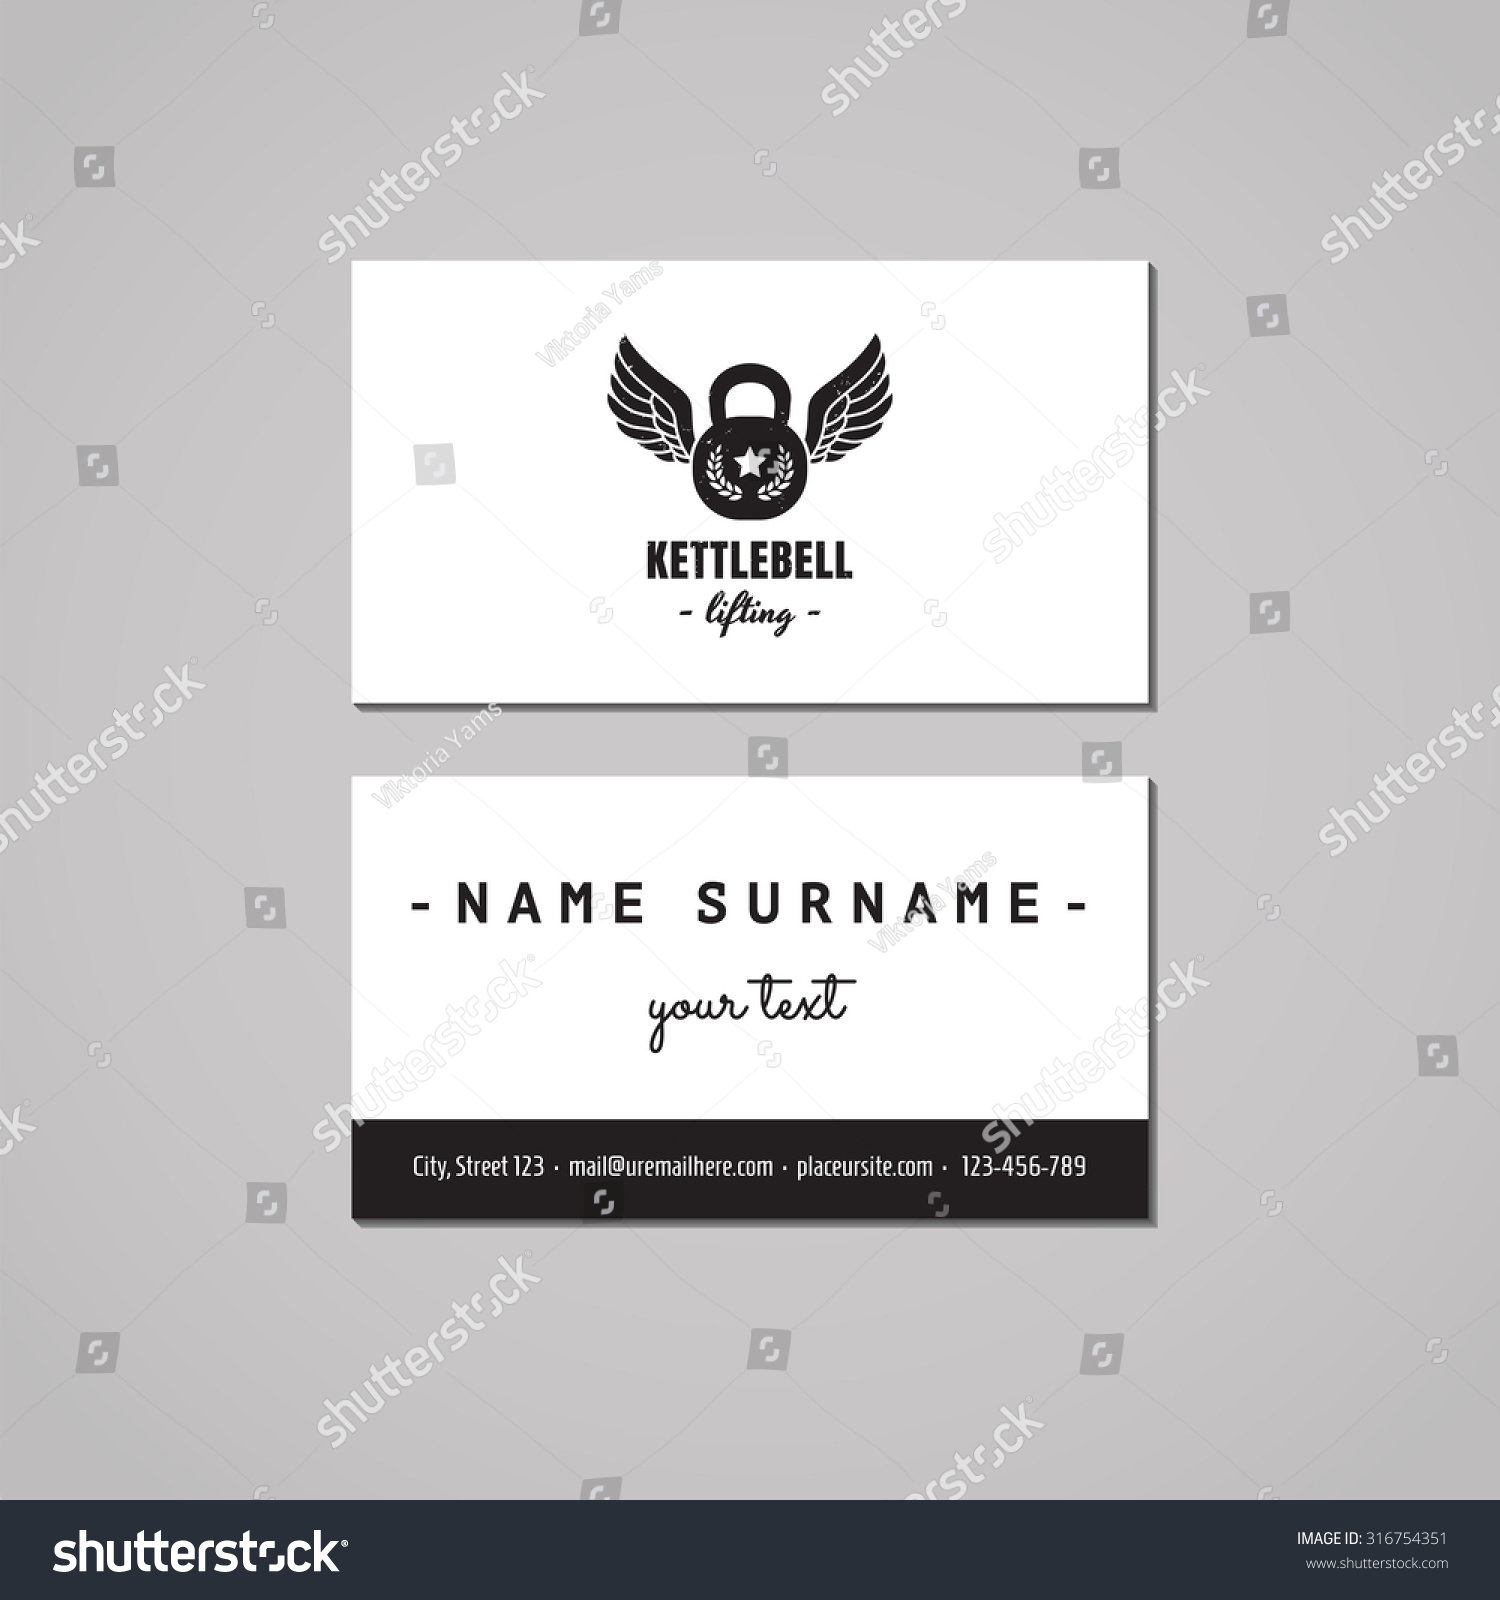 Sport Fitness Vintage Business Card Design Stock Vector HD (Royalty ...